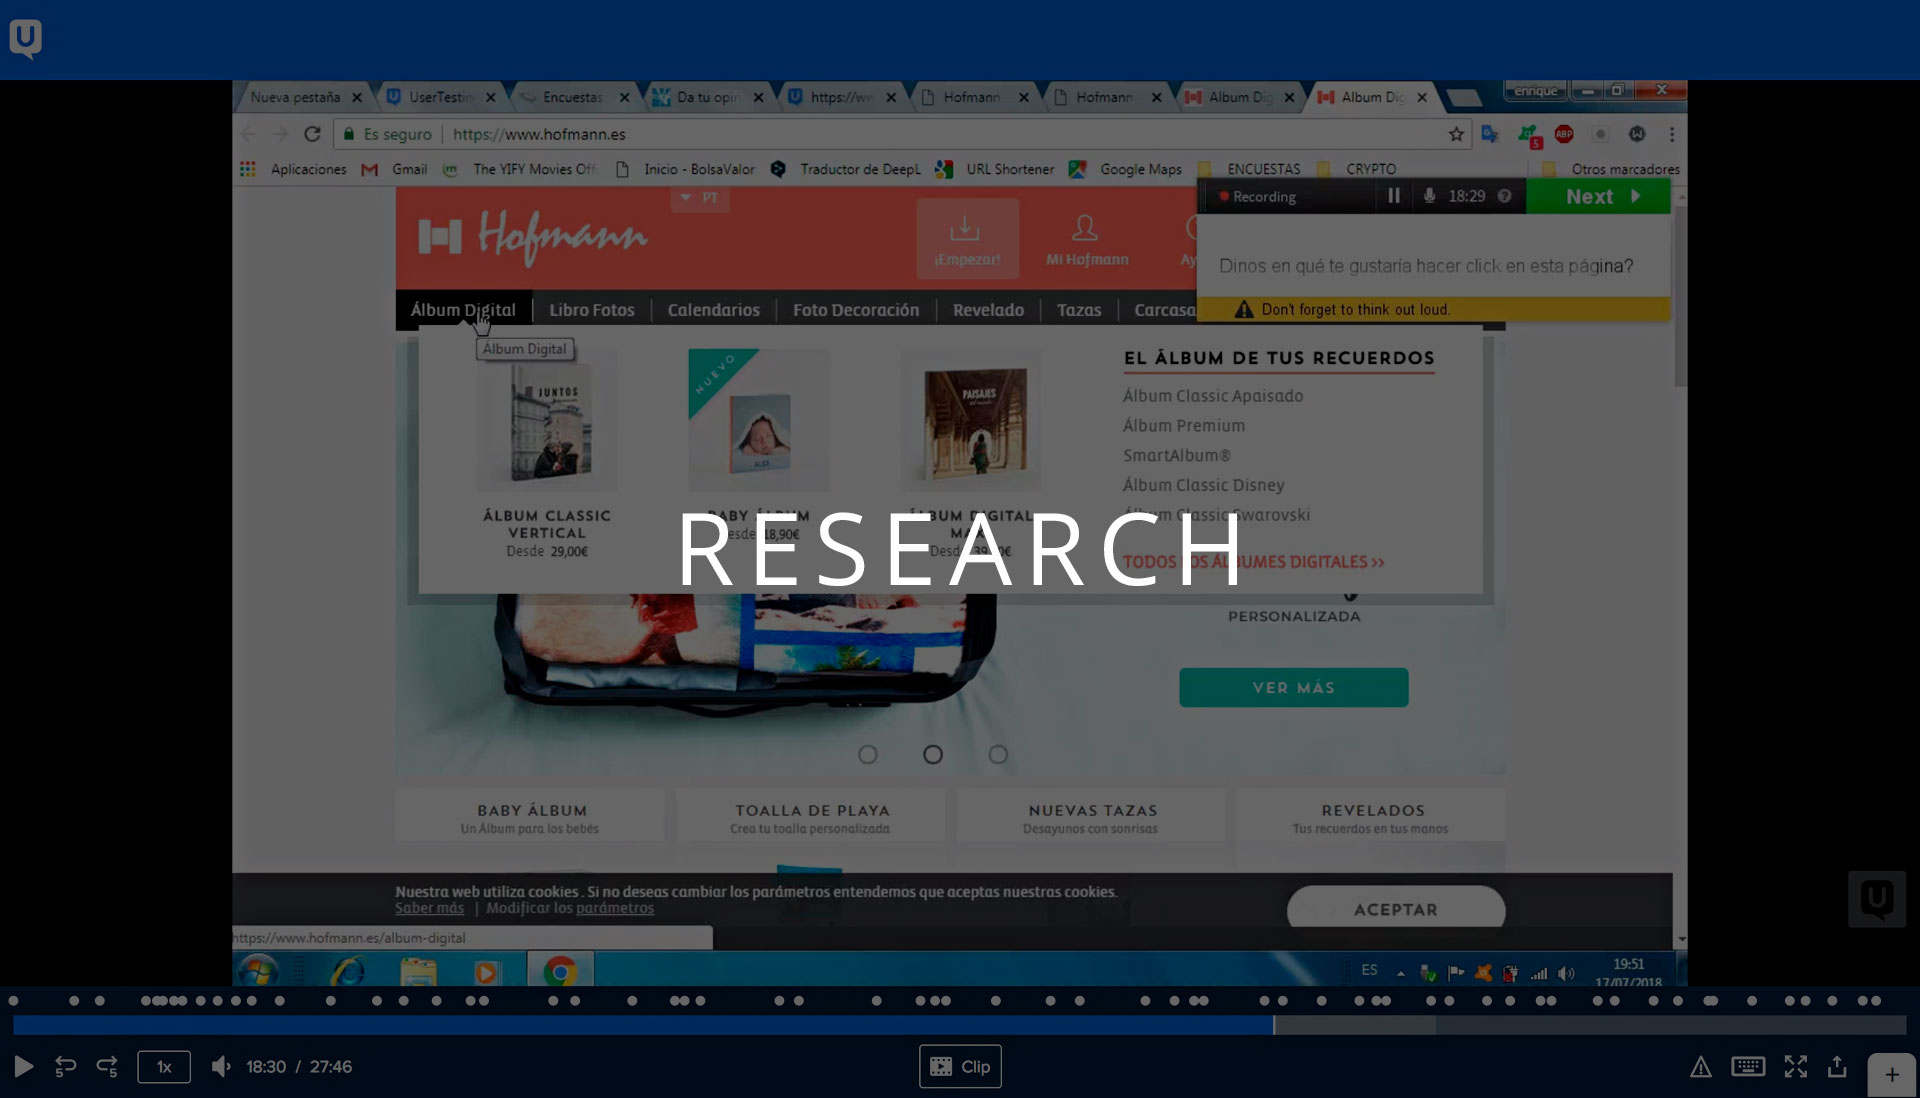 01 Research: unmoderated usability testing